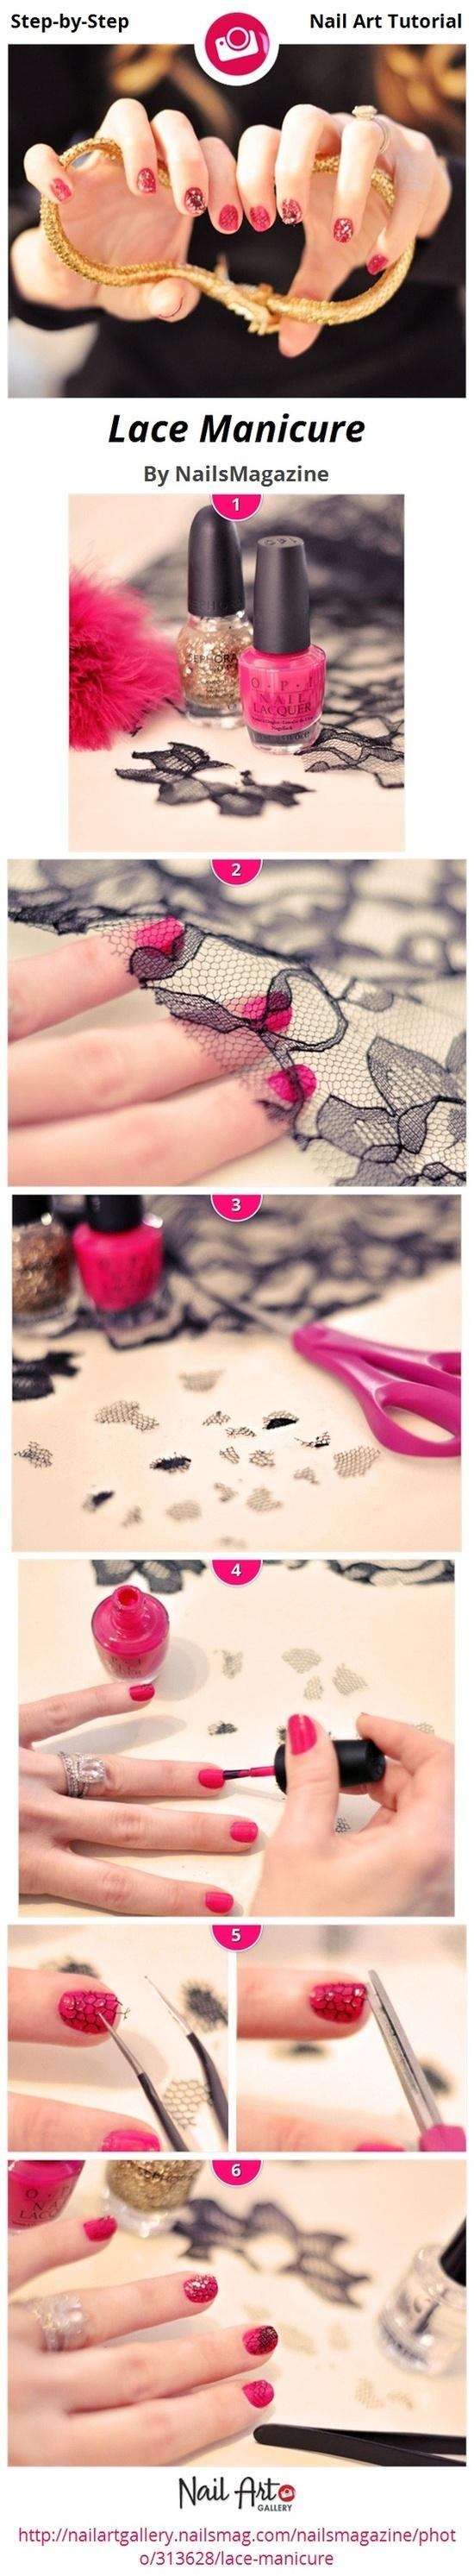 Diy lace nail design do it yourself fashion tips diy fashion diy lace nail design do it yourself fashion tips diy fashion projects solutioingenieria Images